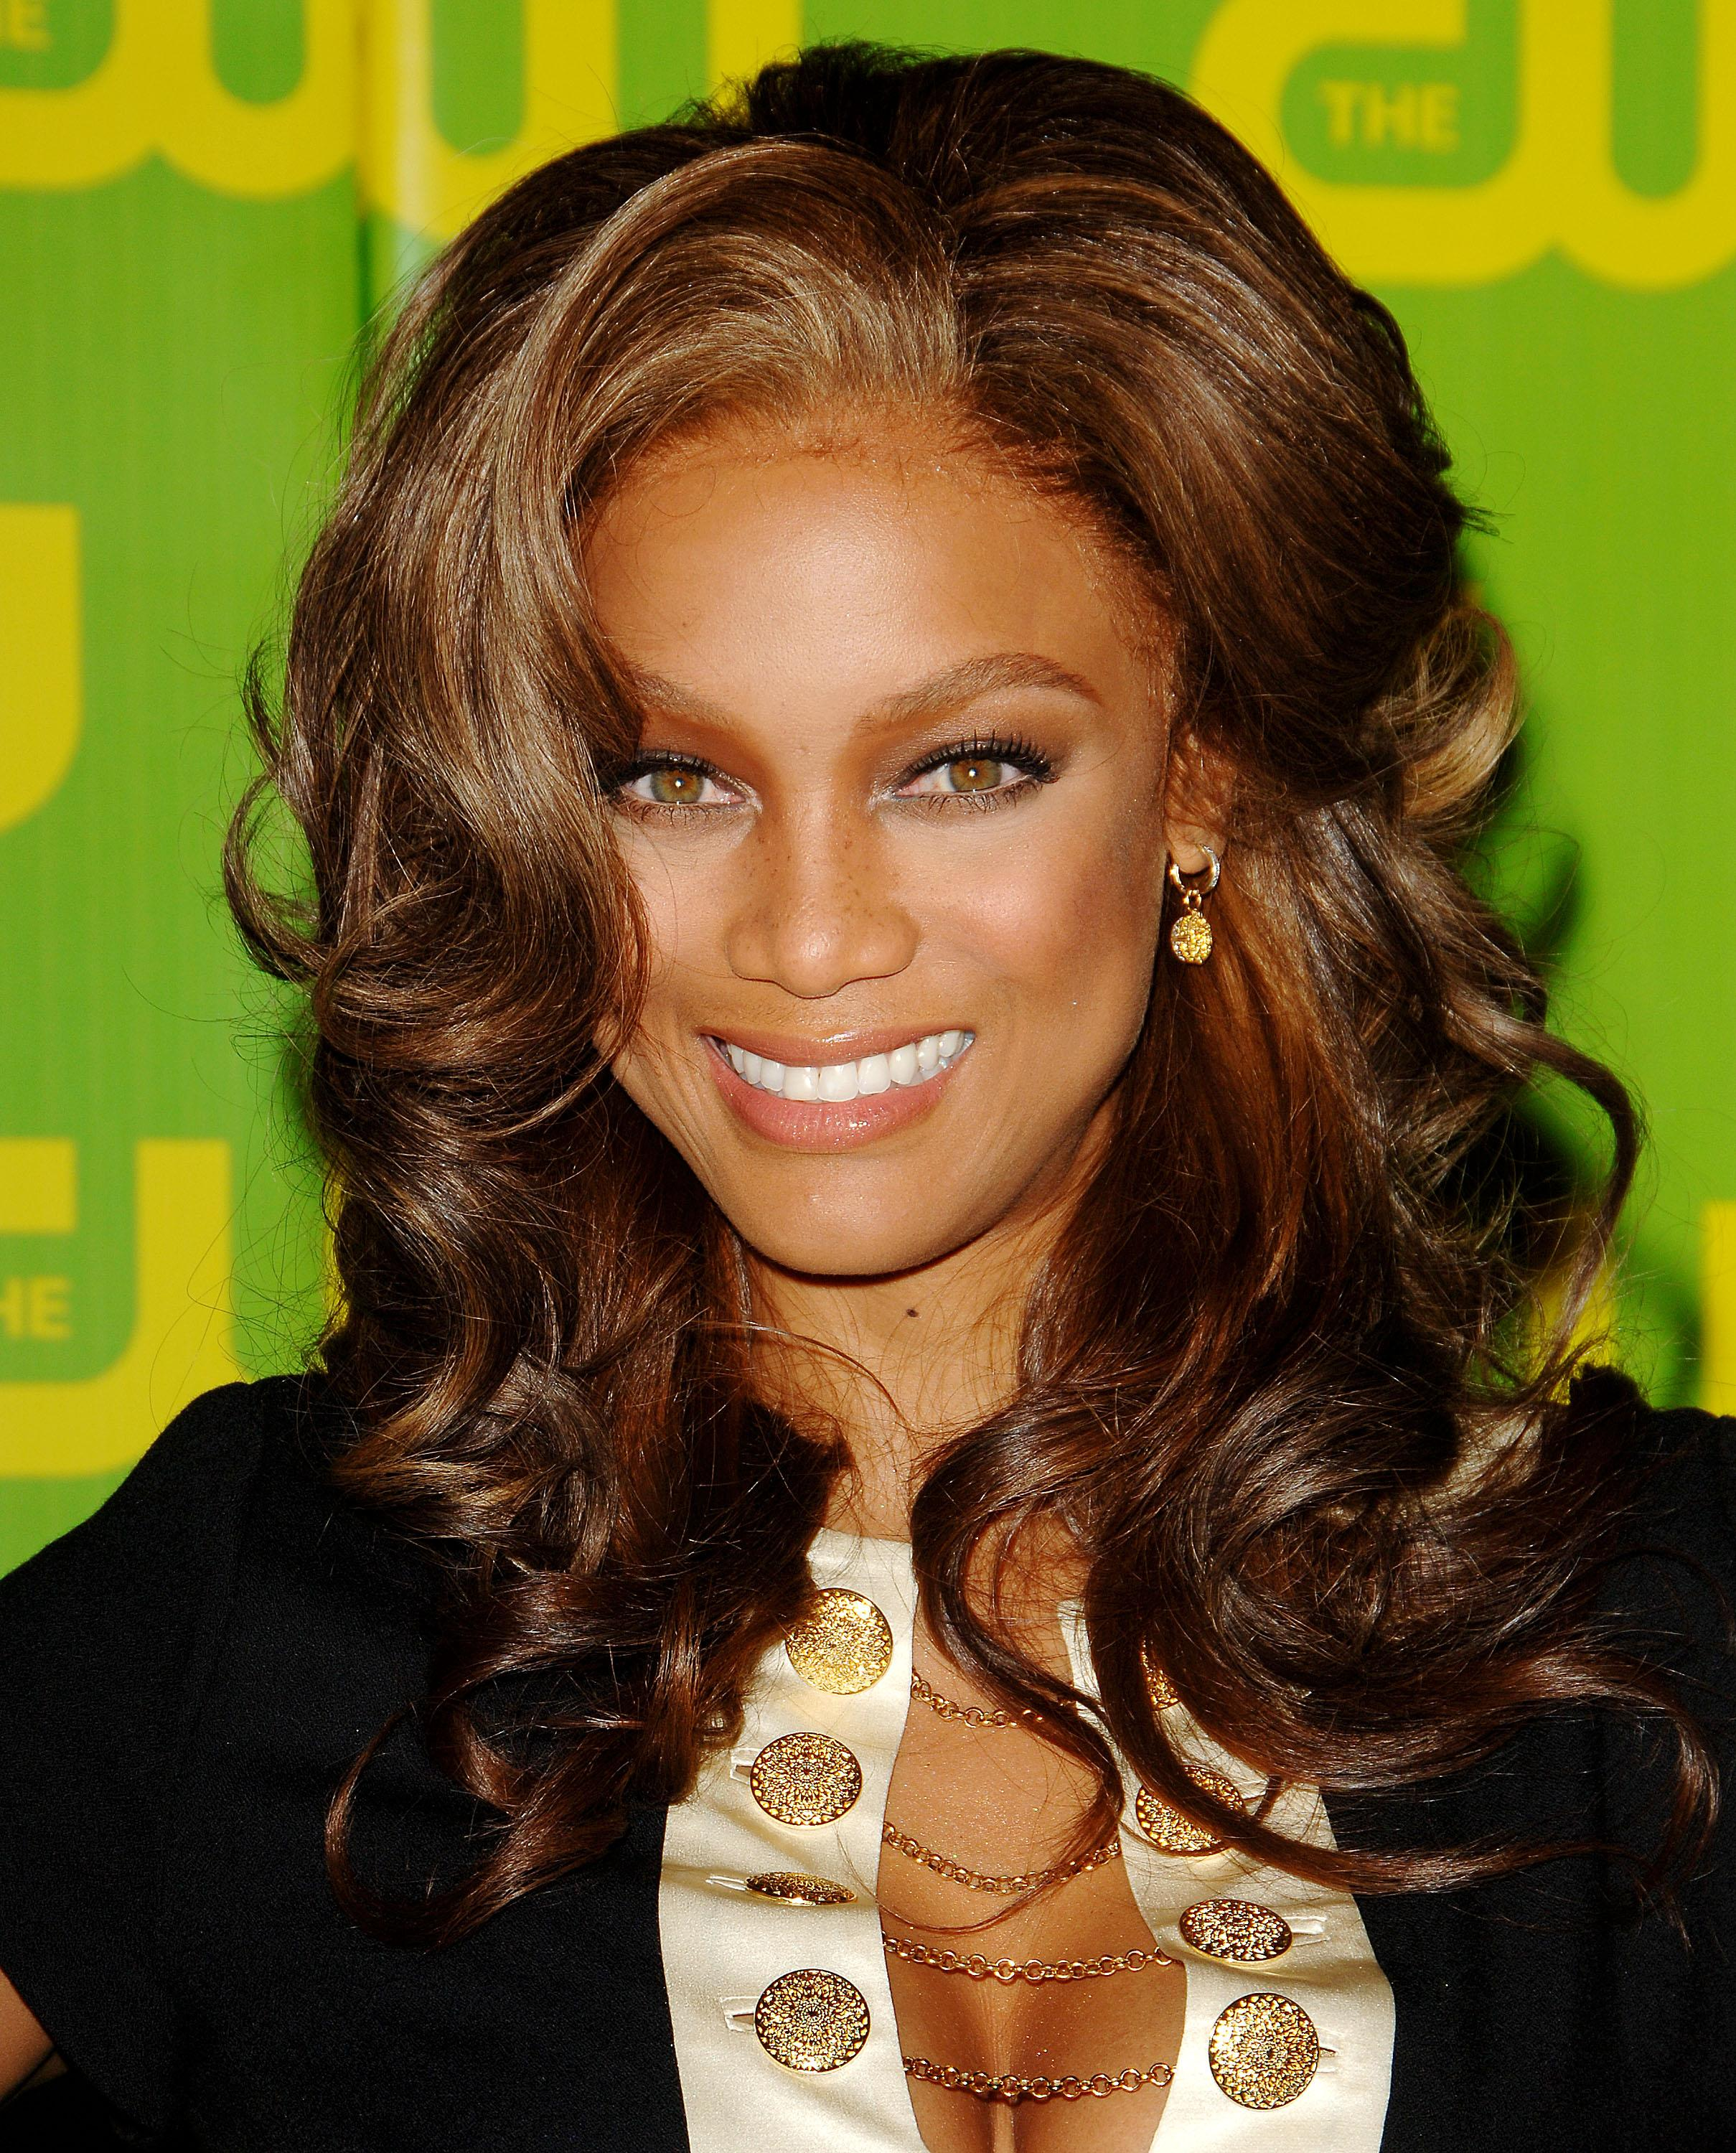 Tyra Banks Black And White: 1000+ Images About Enneagram Type 7 By Enneagram.net On